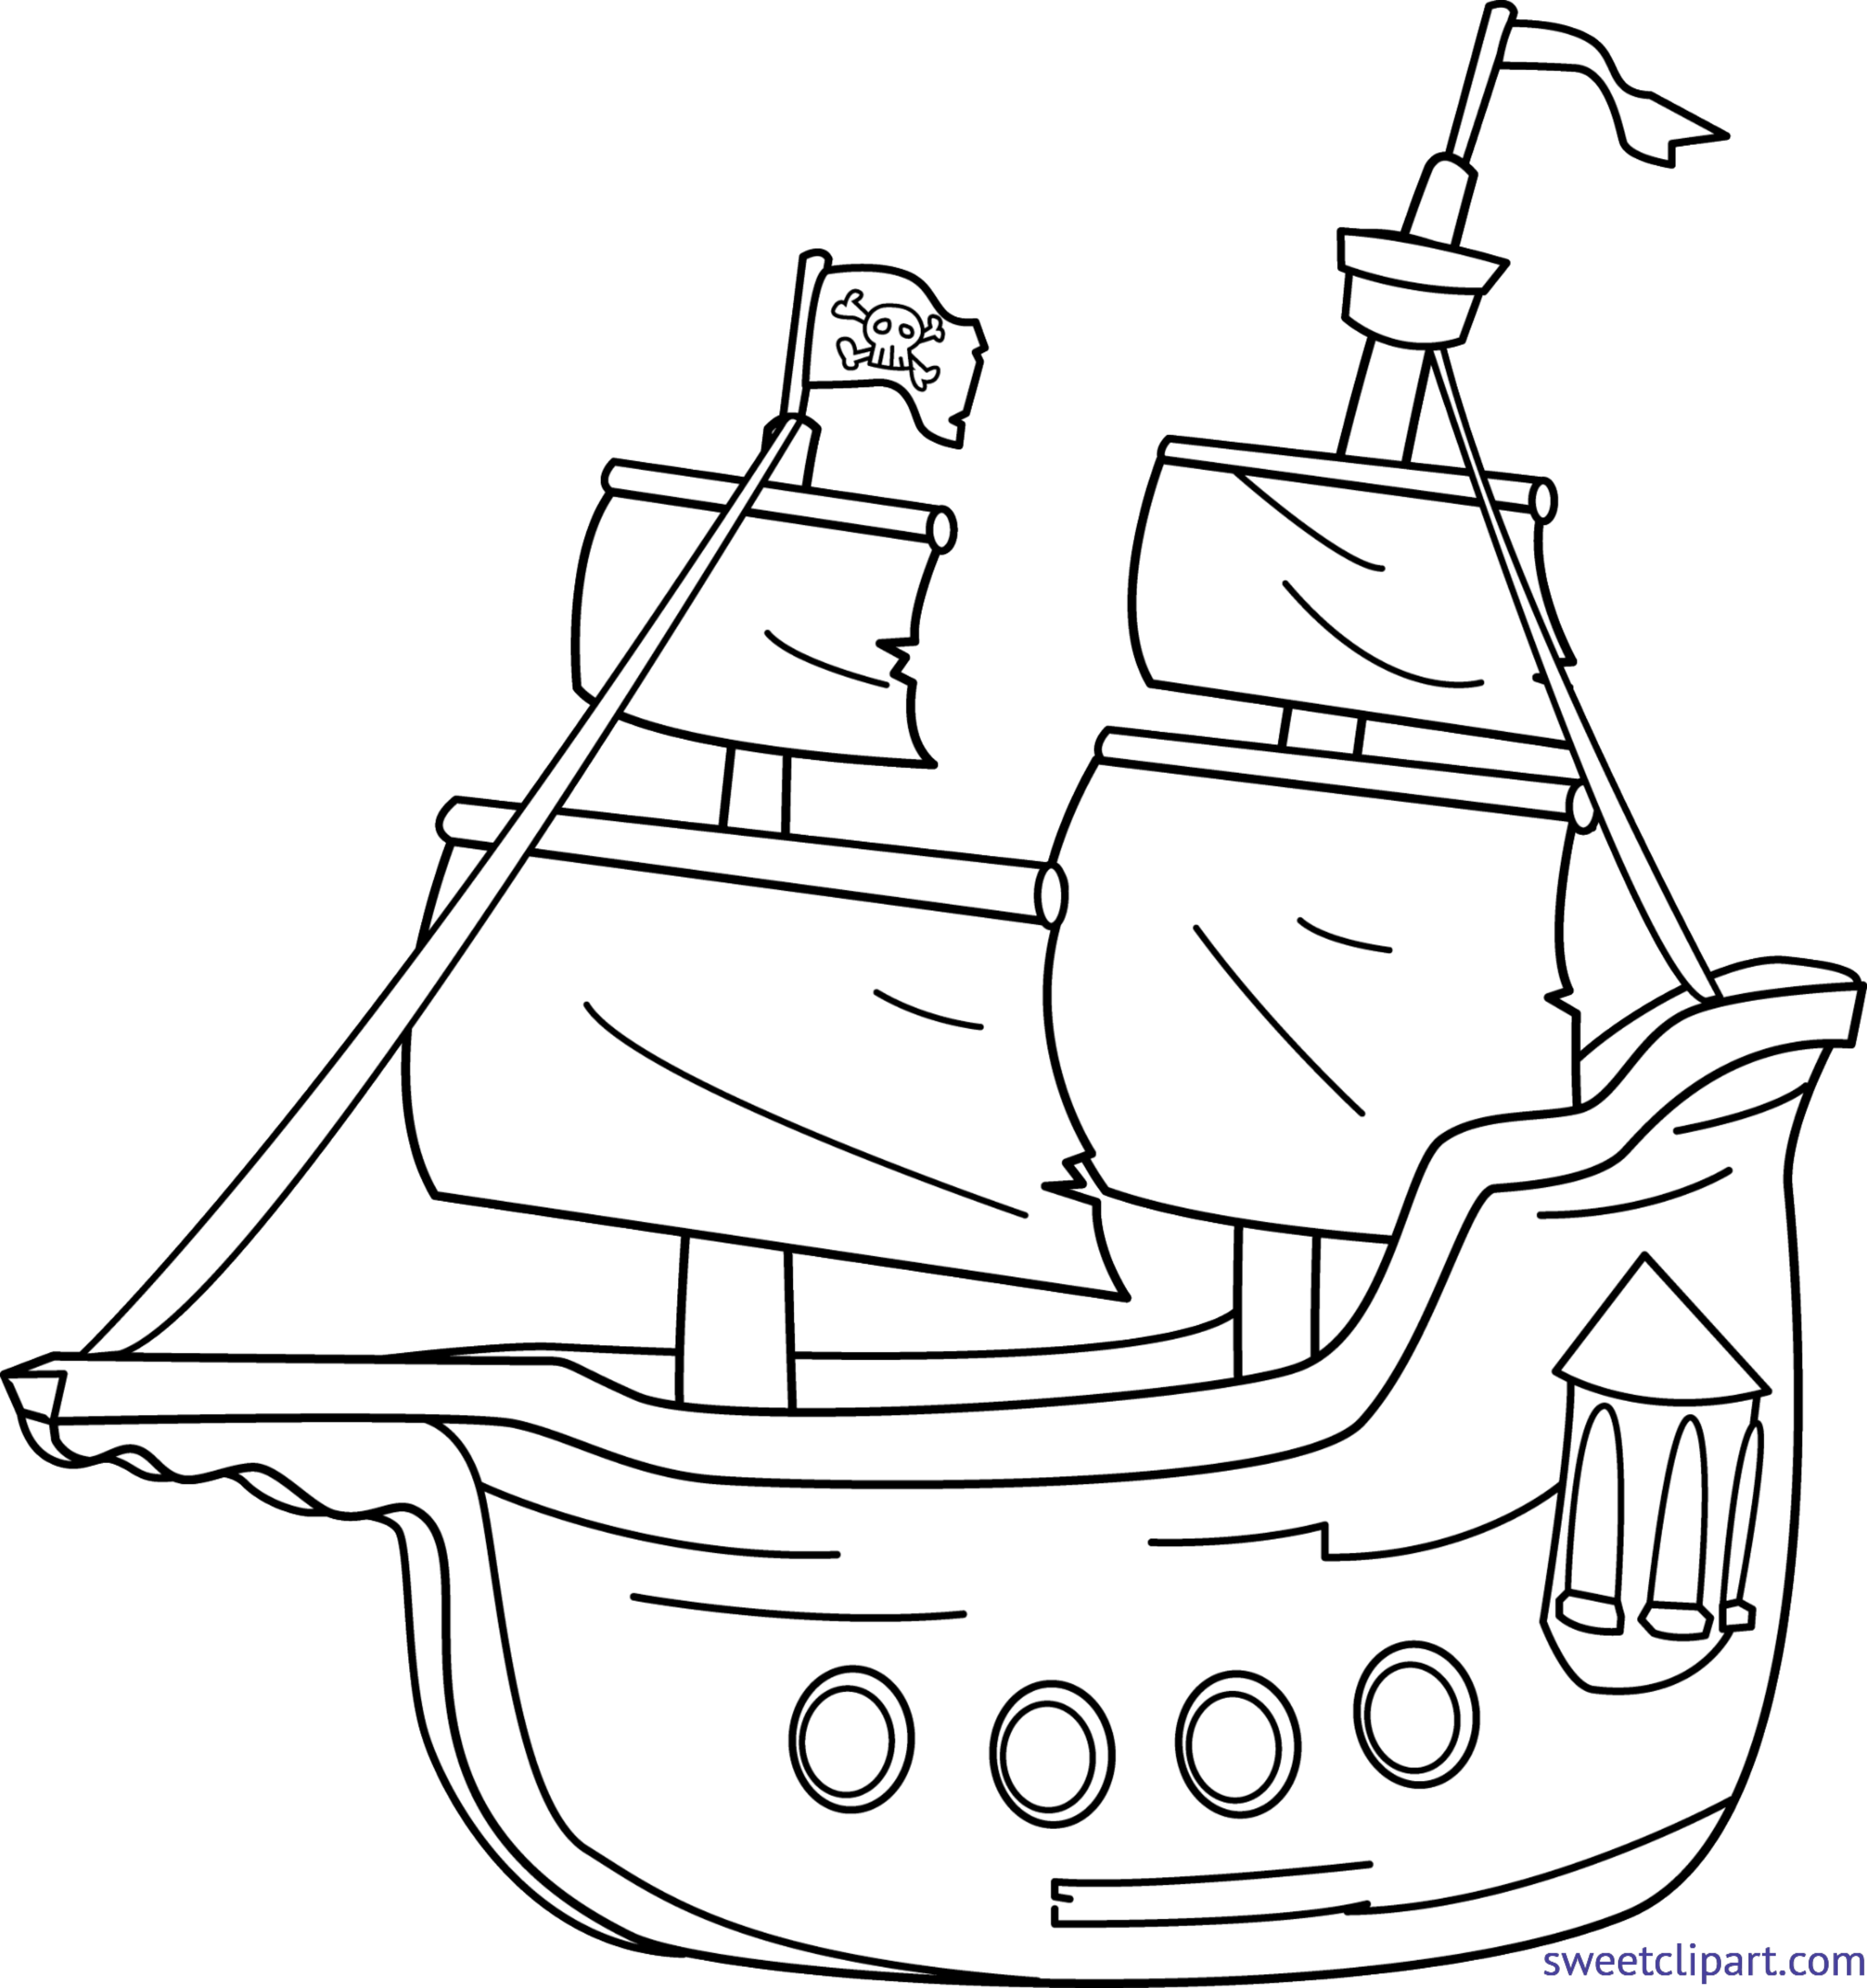 Pirate ship lineart clip. Windy clipart foggy